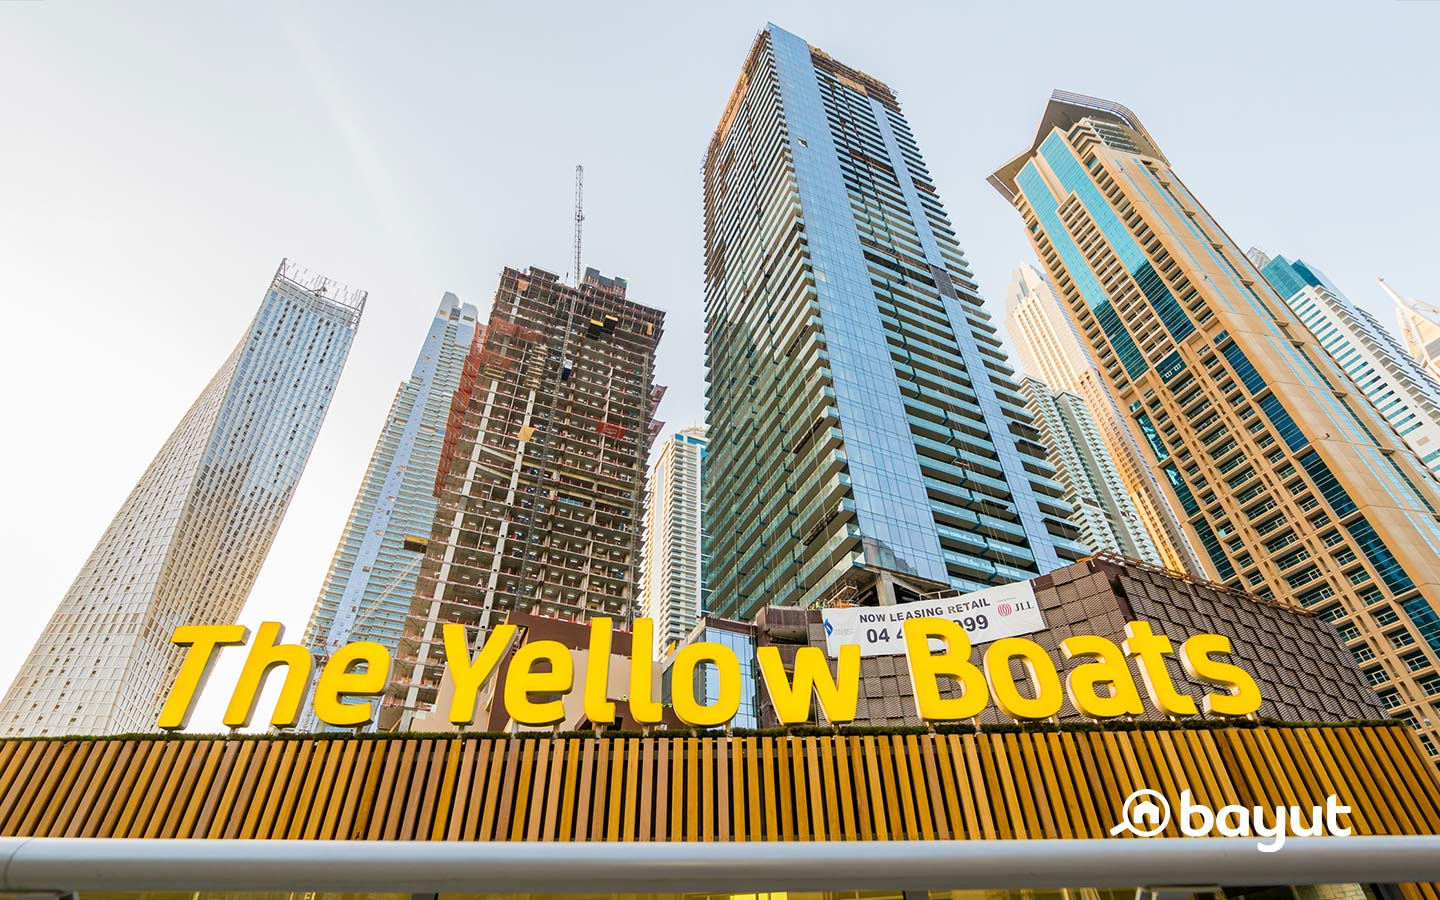 Singthsseing in Dubai Marina with Yellow Boats